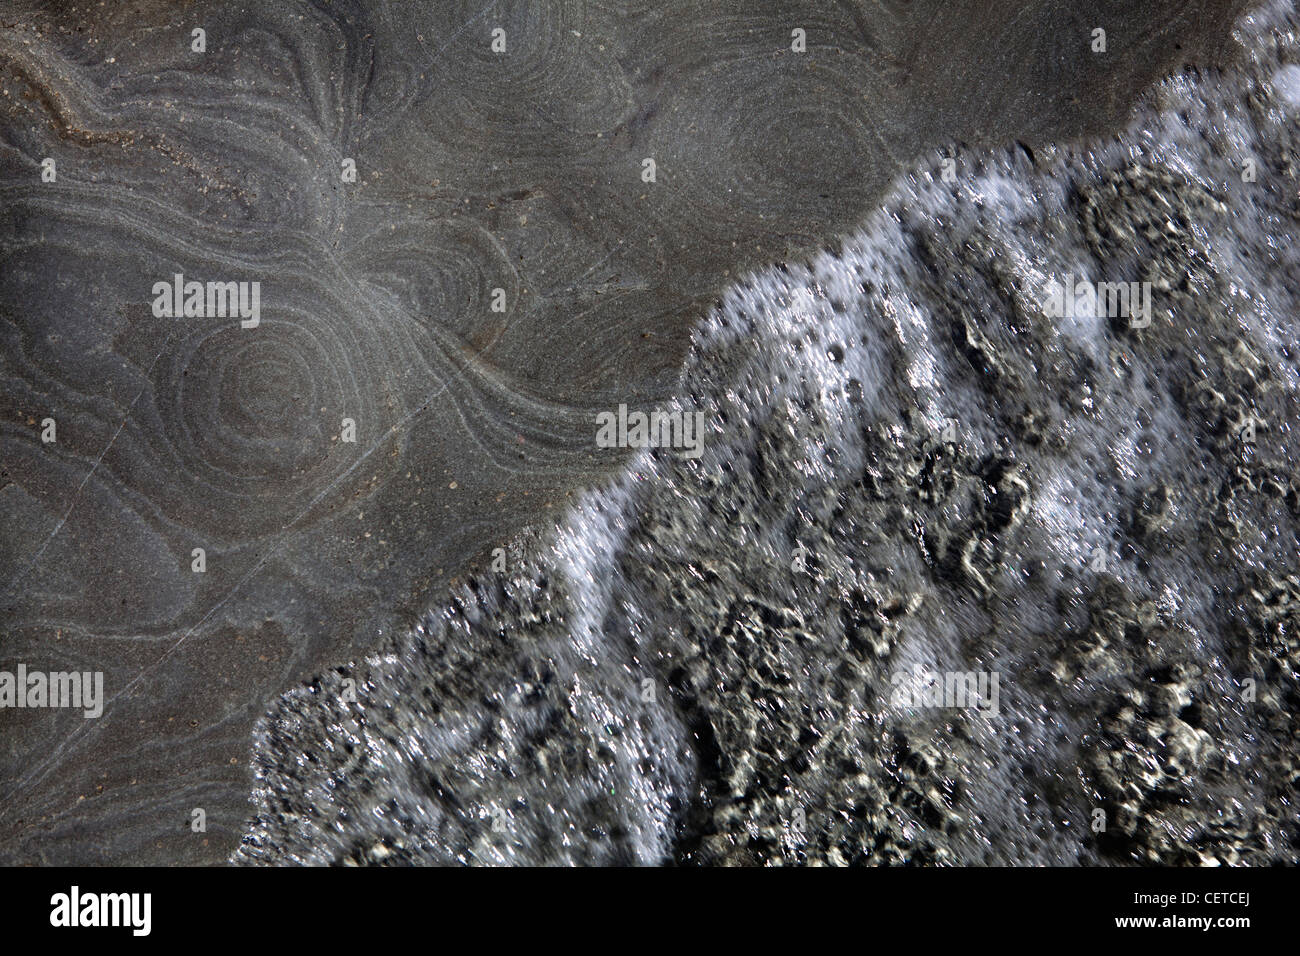 tide washing rocks - Stock Image